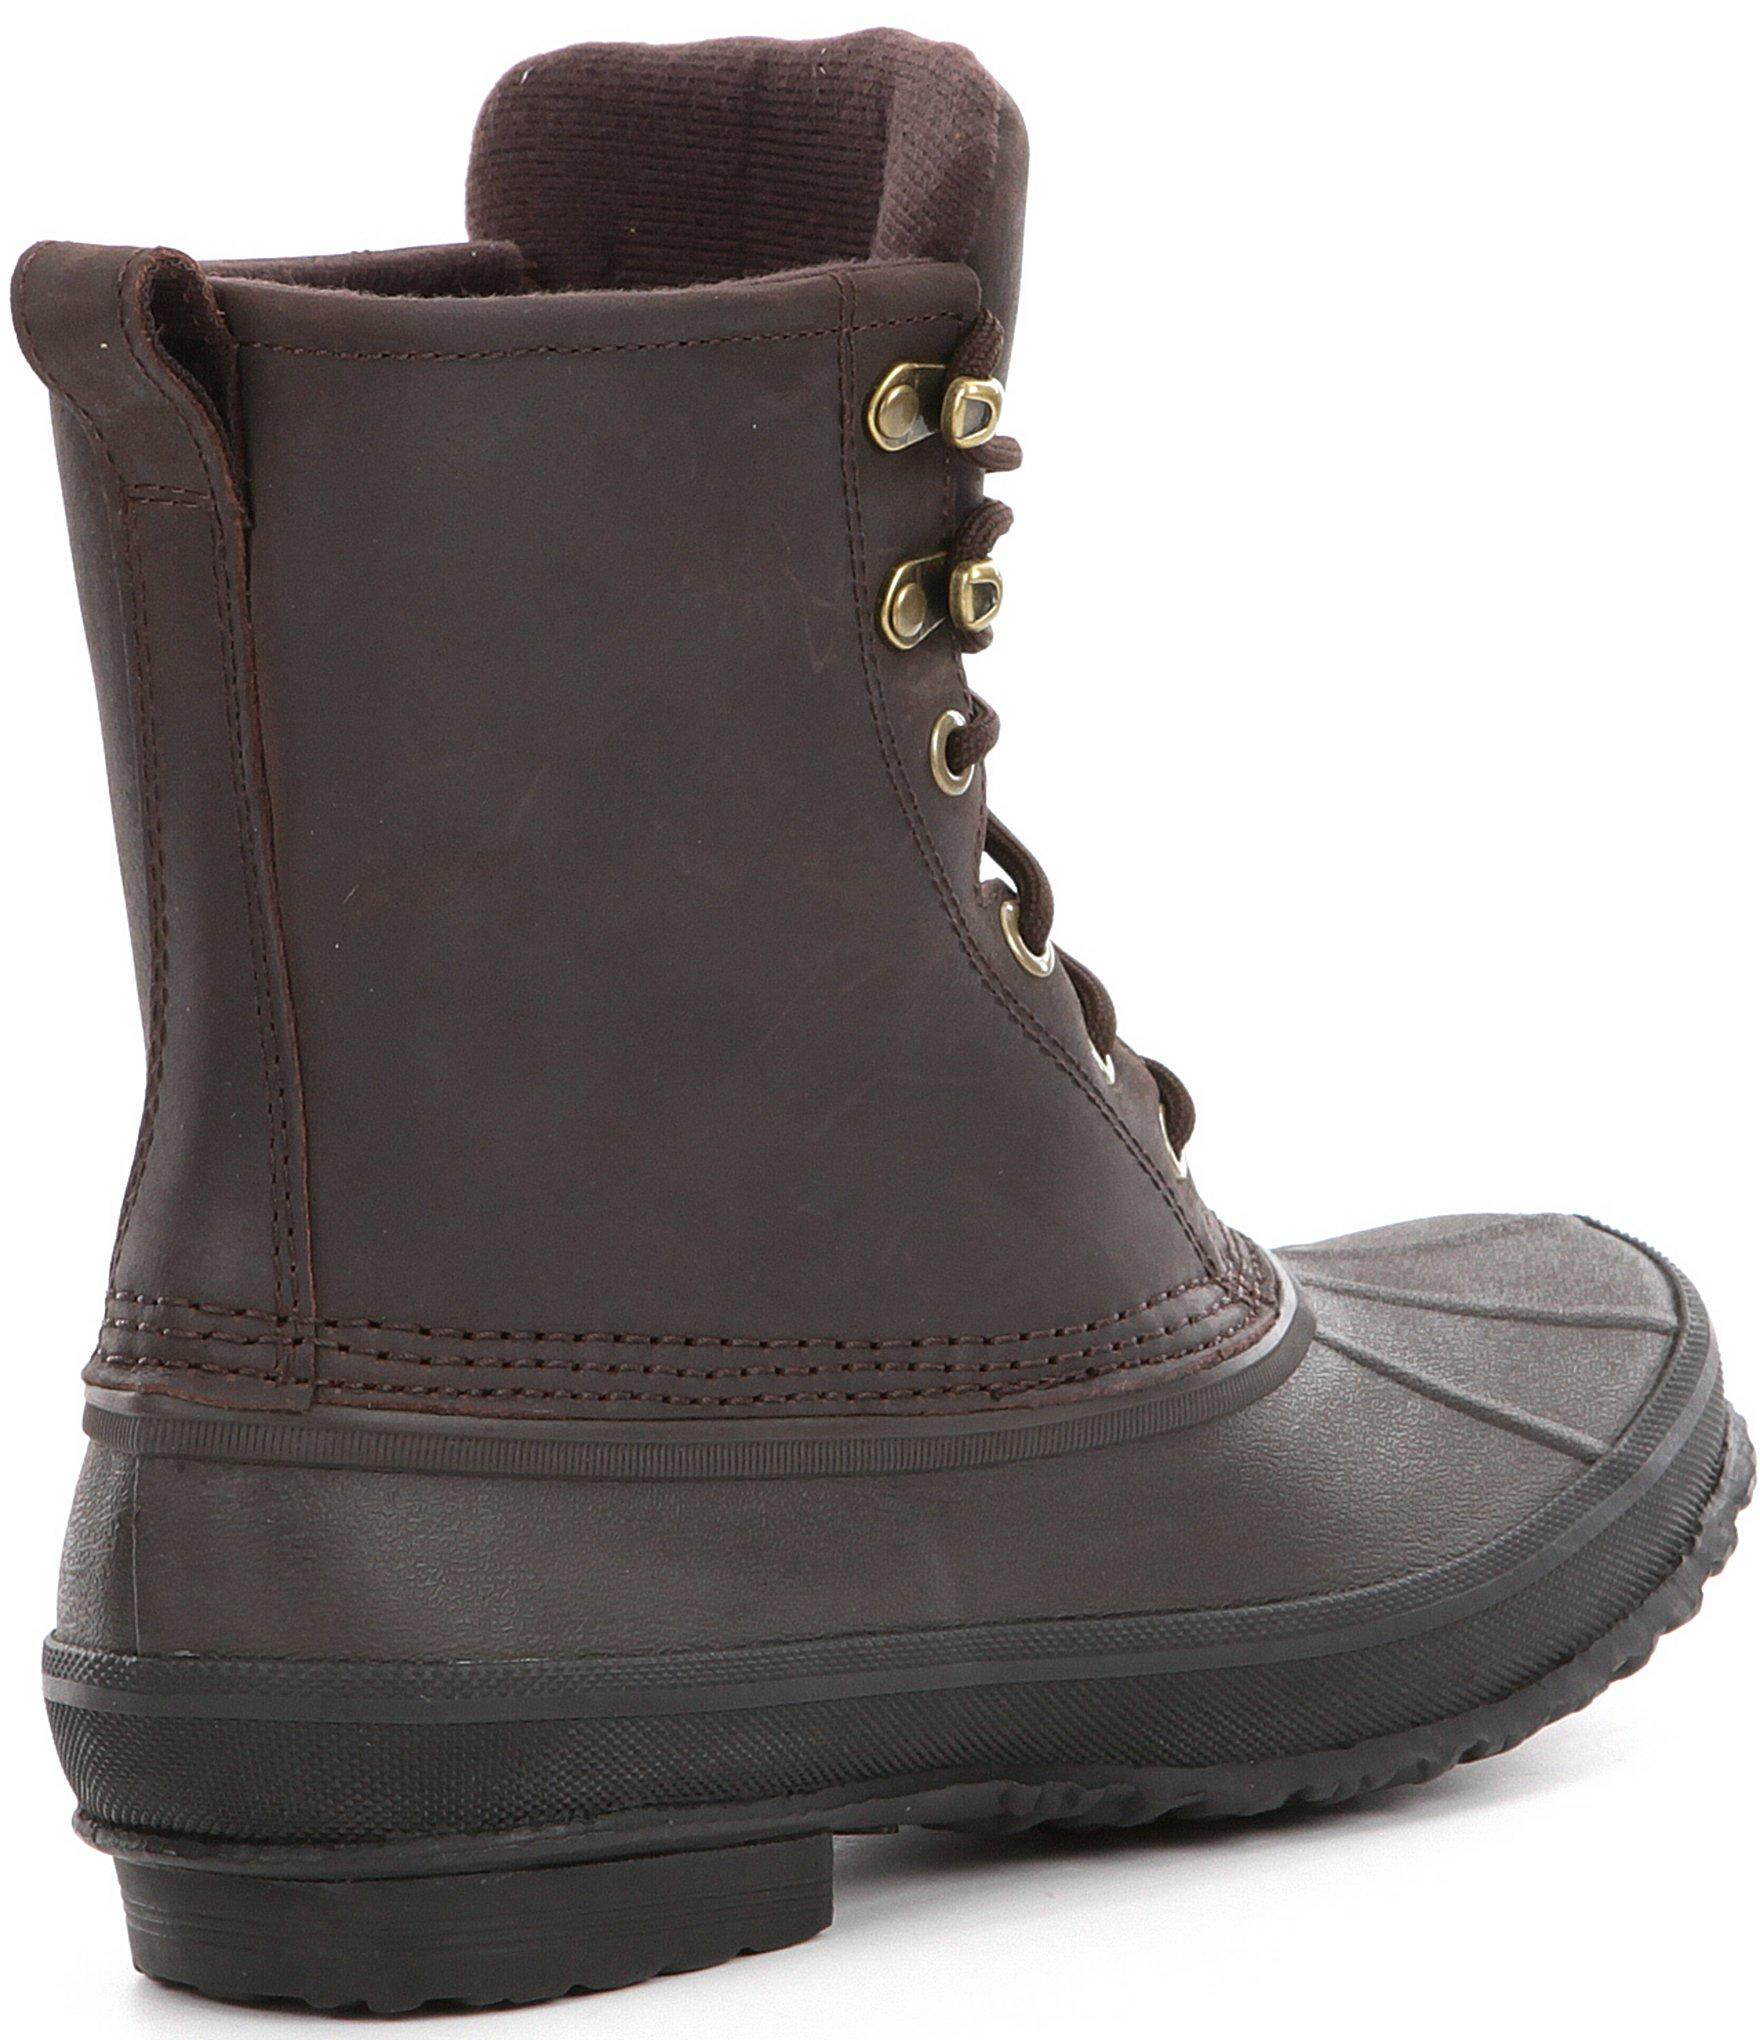 4e6d27775aa Lyst - UGG ® Men ́s Yucca Cold-weather Waterproof Rain Boots in ...